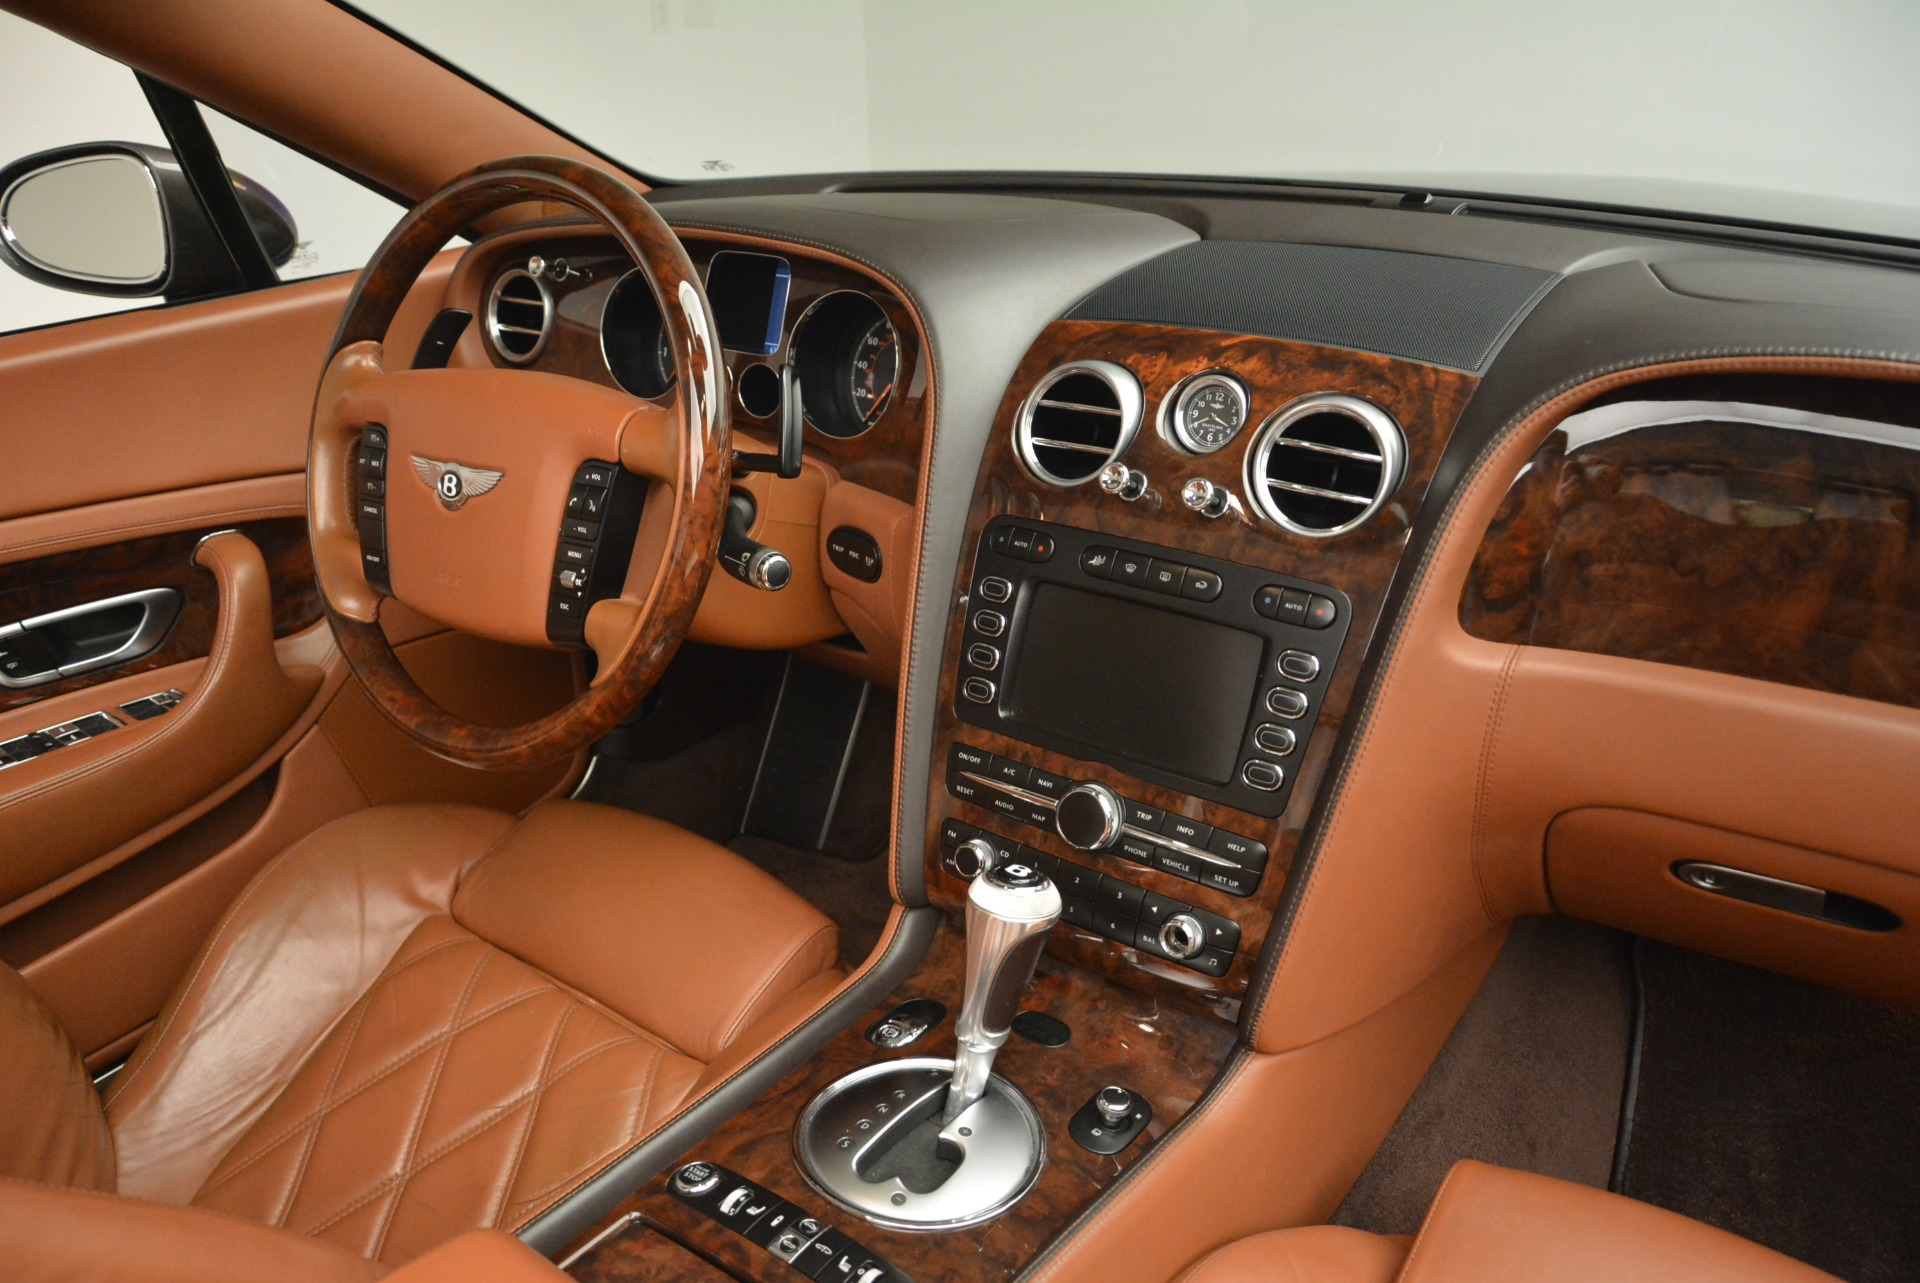 Used 2008 Bentley Continental GT W12 For Sale In Westport, CT 2190_p43